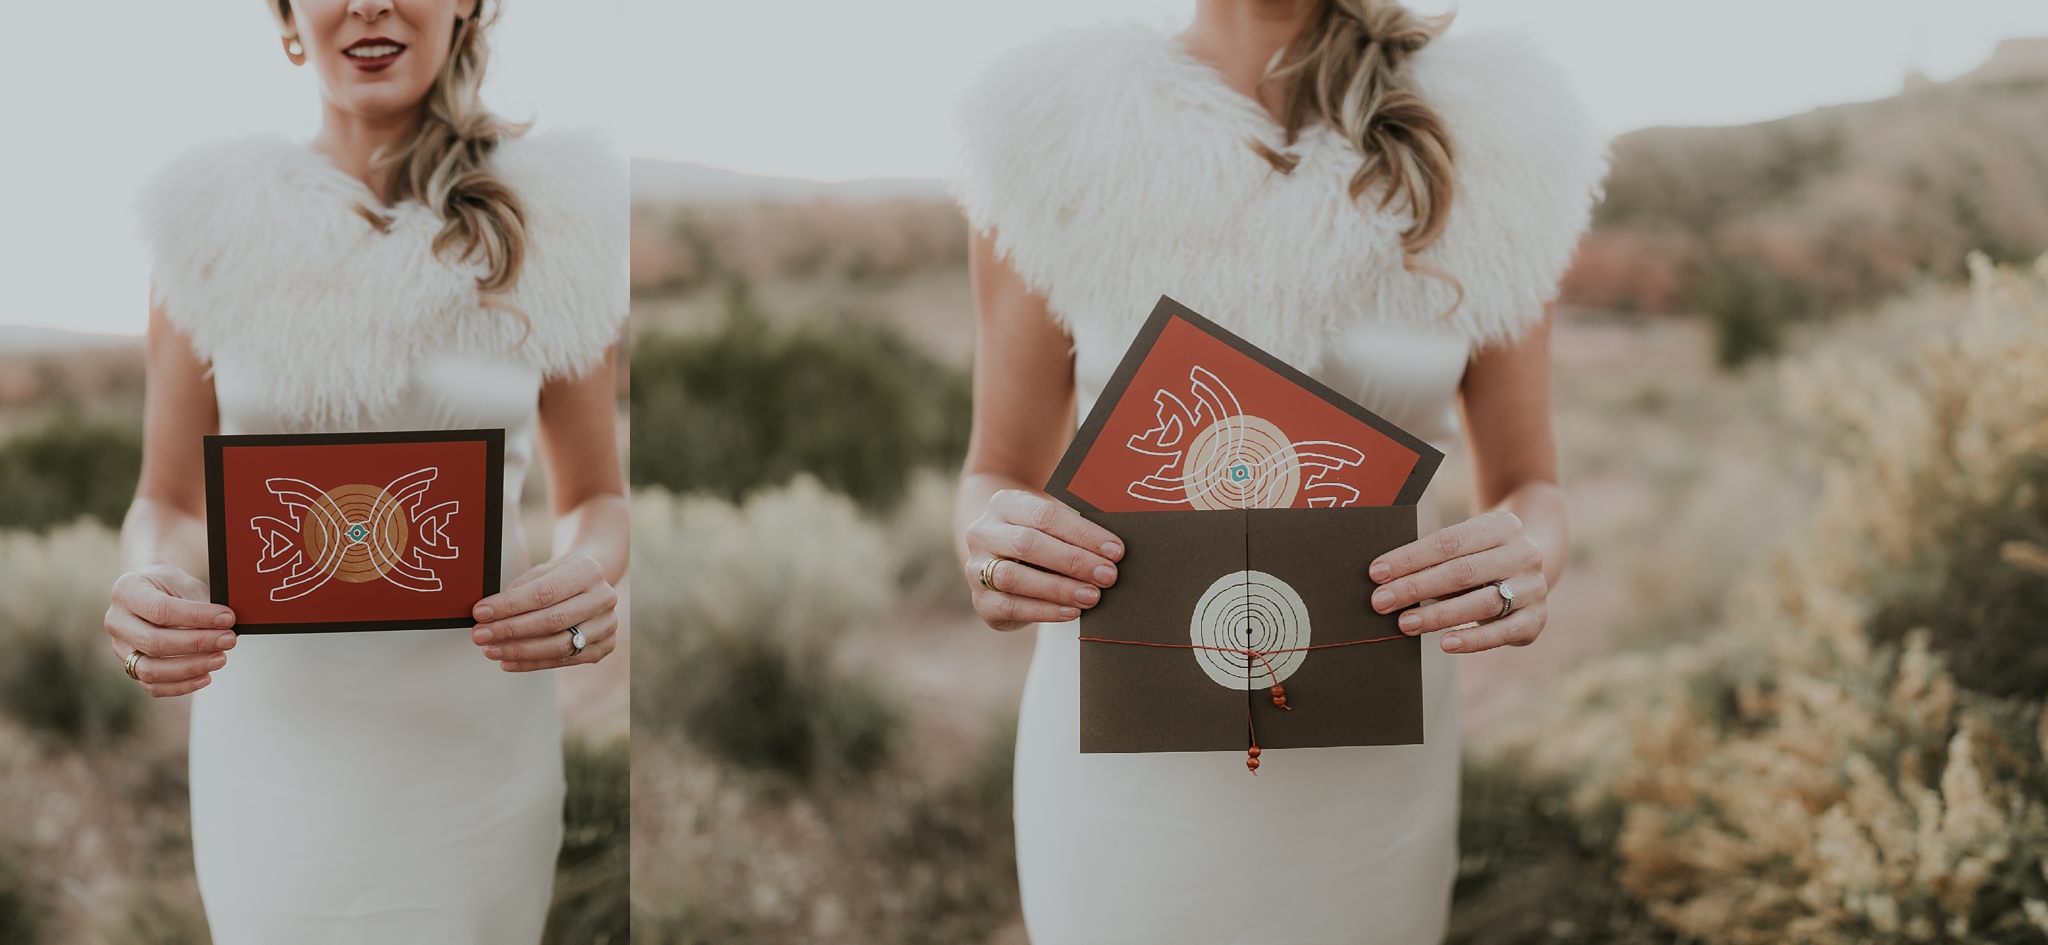 Alicia+lucia+photography+-+albuquerque+wedding+photographer+-+santa+fe+wedding+photography+-+new+mexico+wedding+photographer+-+new+mexico+wedding+-+wedding+invitations+-+invitation+suite+-+wedding+inspo_0018.jpg